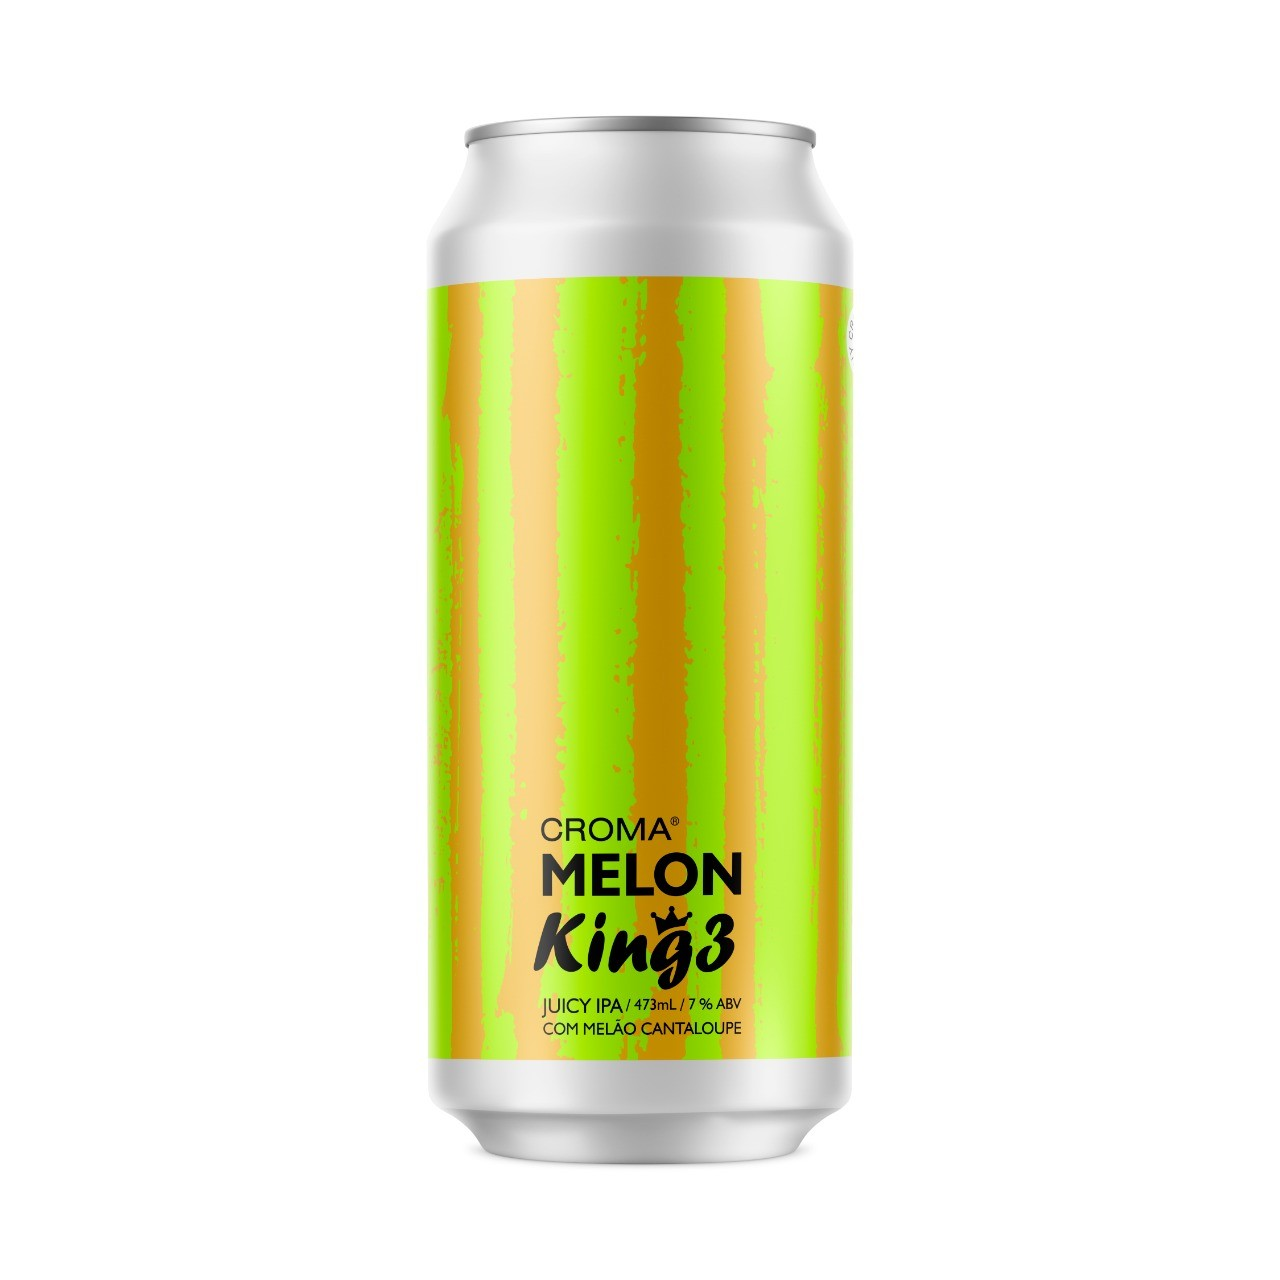 Croma Melon King 3 lata 473ml Juicy IPA